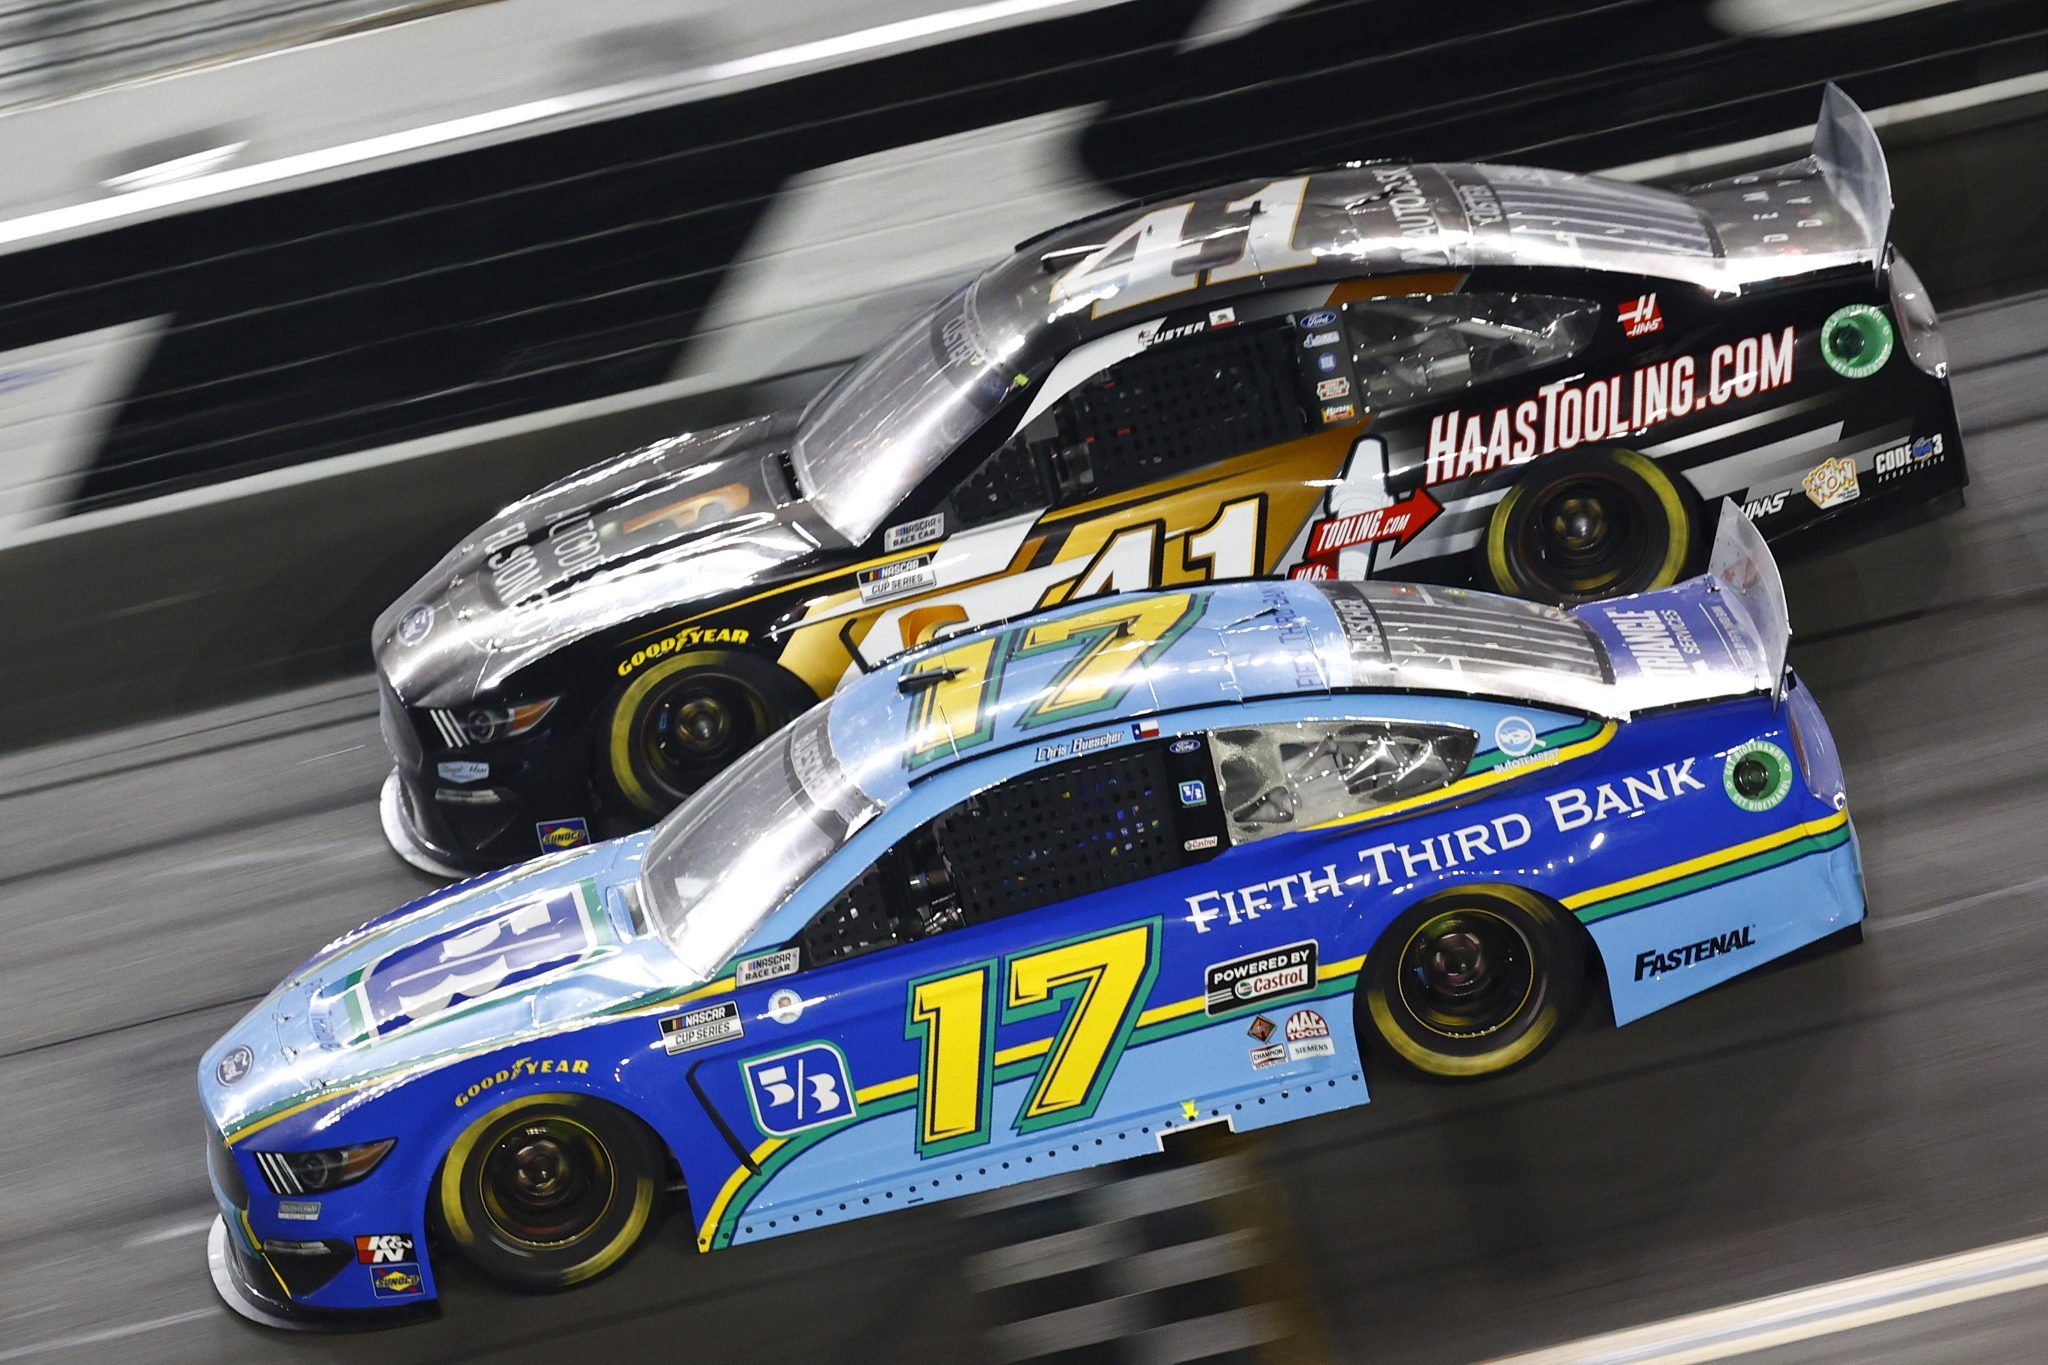 DAYTONA BEACH, FLORIDA - AUGUST 28: Chris Buescher, driver of the #17 Fifth Third Bank Ford, and Cole Custer, driver of the #41 Autodesk/HaasTooling.com Ford, race during the NASCAR Cup Series Coke Zero Sugar 400 at Daytona International Speedway on August 28, 2021 in Daytona Beach, Florida. (Photo by Jared C. Tilton/Getty Images) | Getty Images